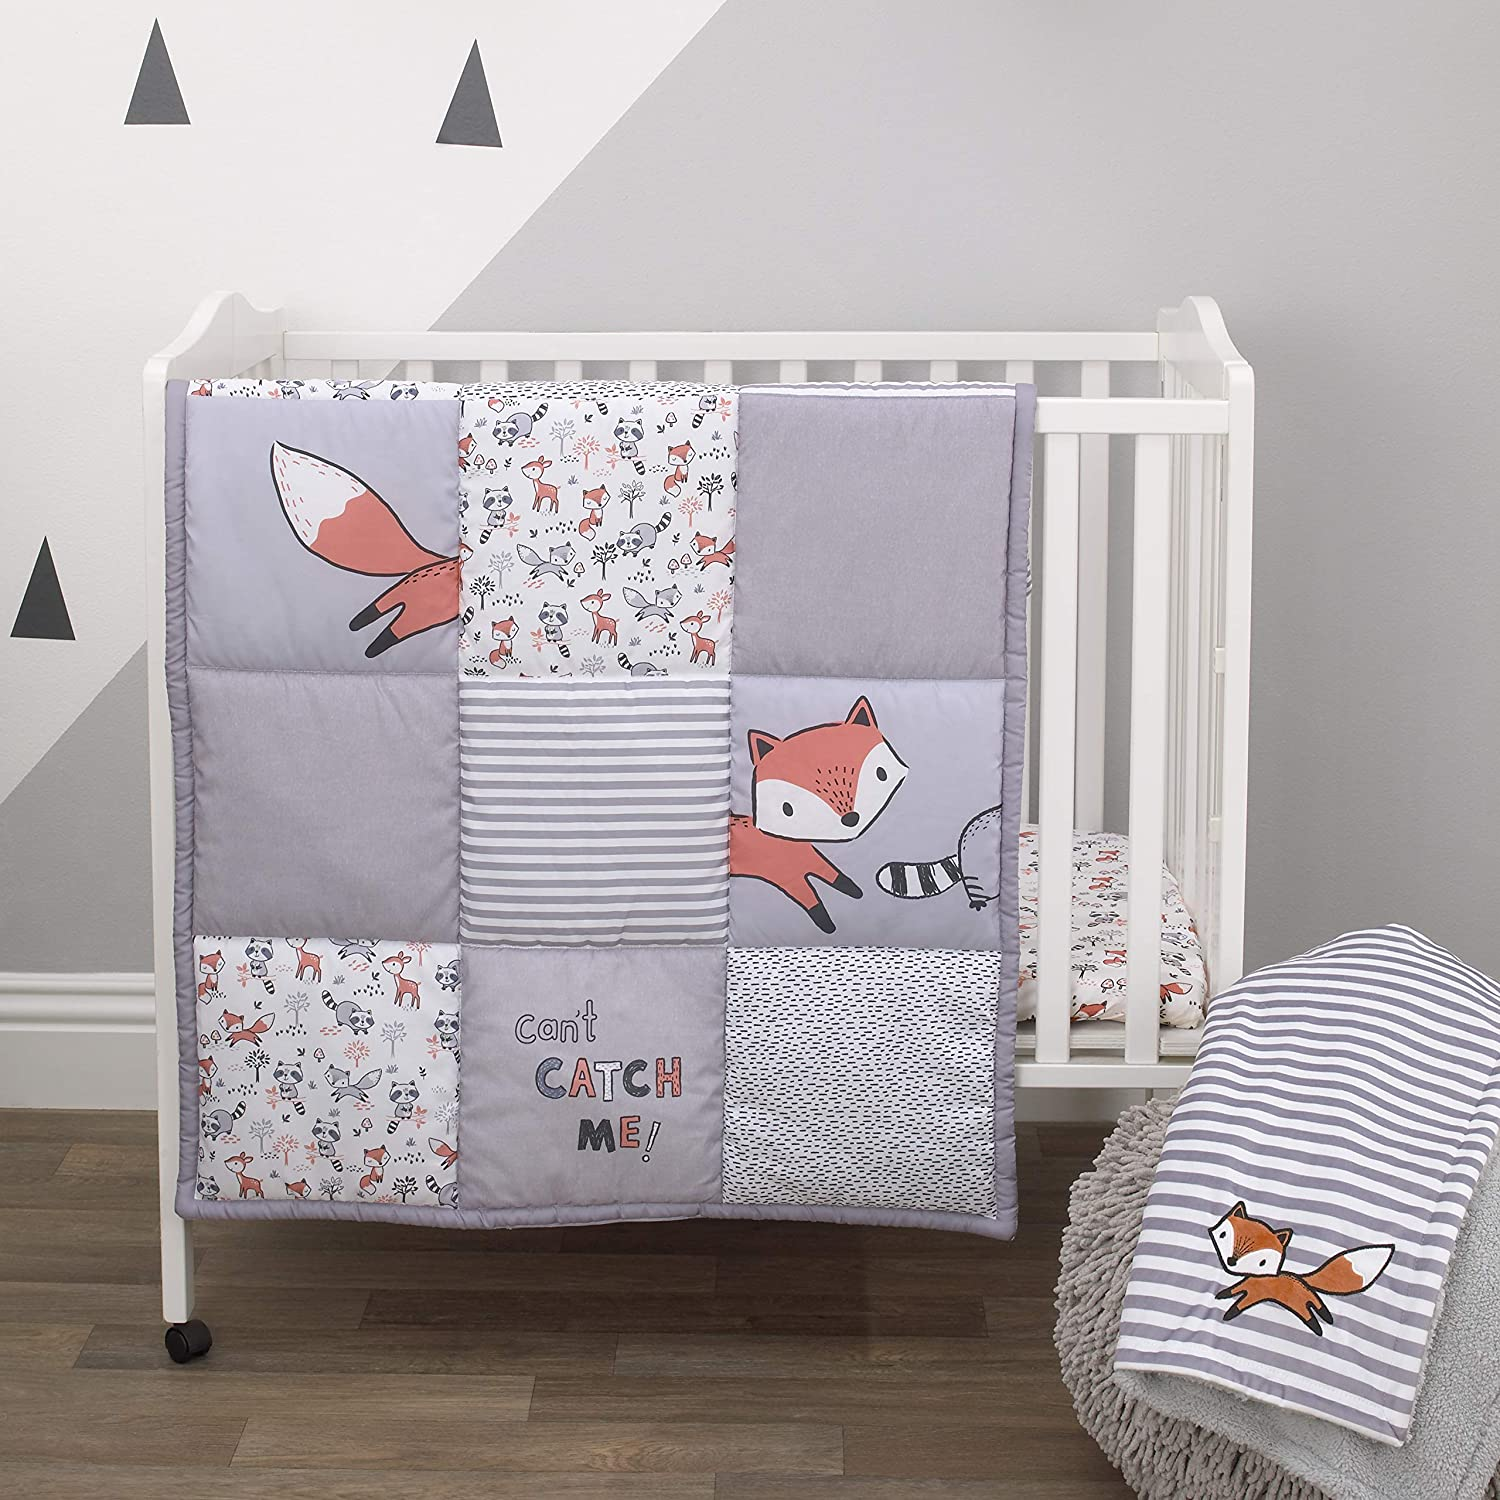 Amazon Com Little Love By Nojo Lil Fox Grey Orange White 3piece Nursery Mini Crib Bedding Set With Comforter 2 Fitted Mini Crib Sheets Orange Grey White Charcoal Baby